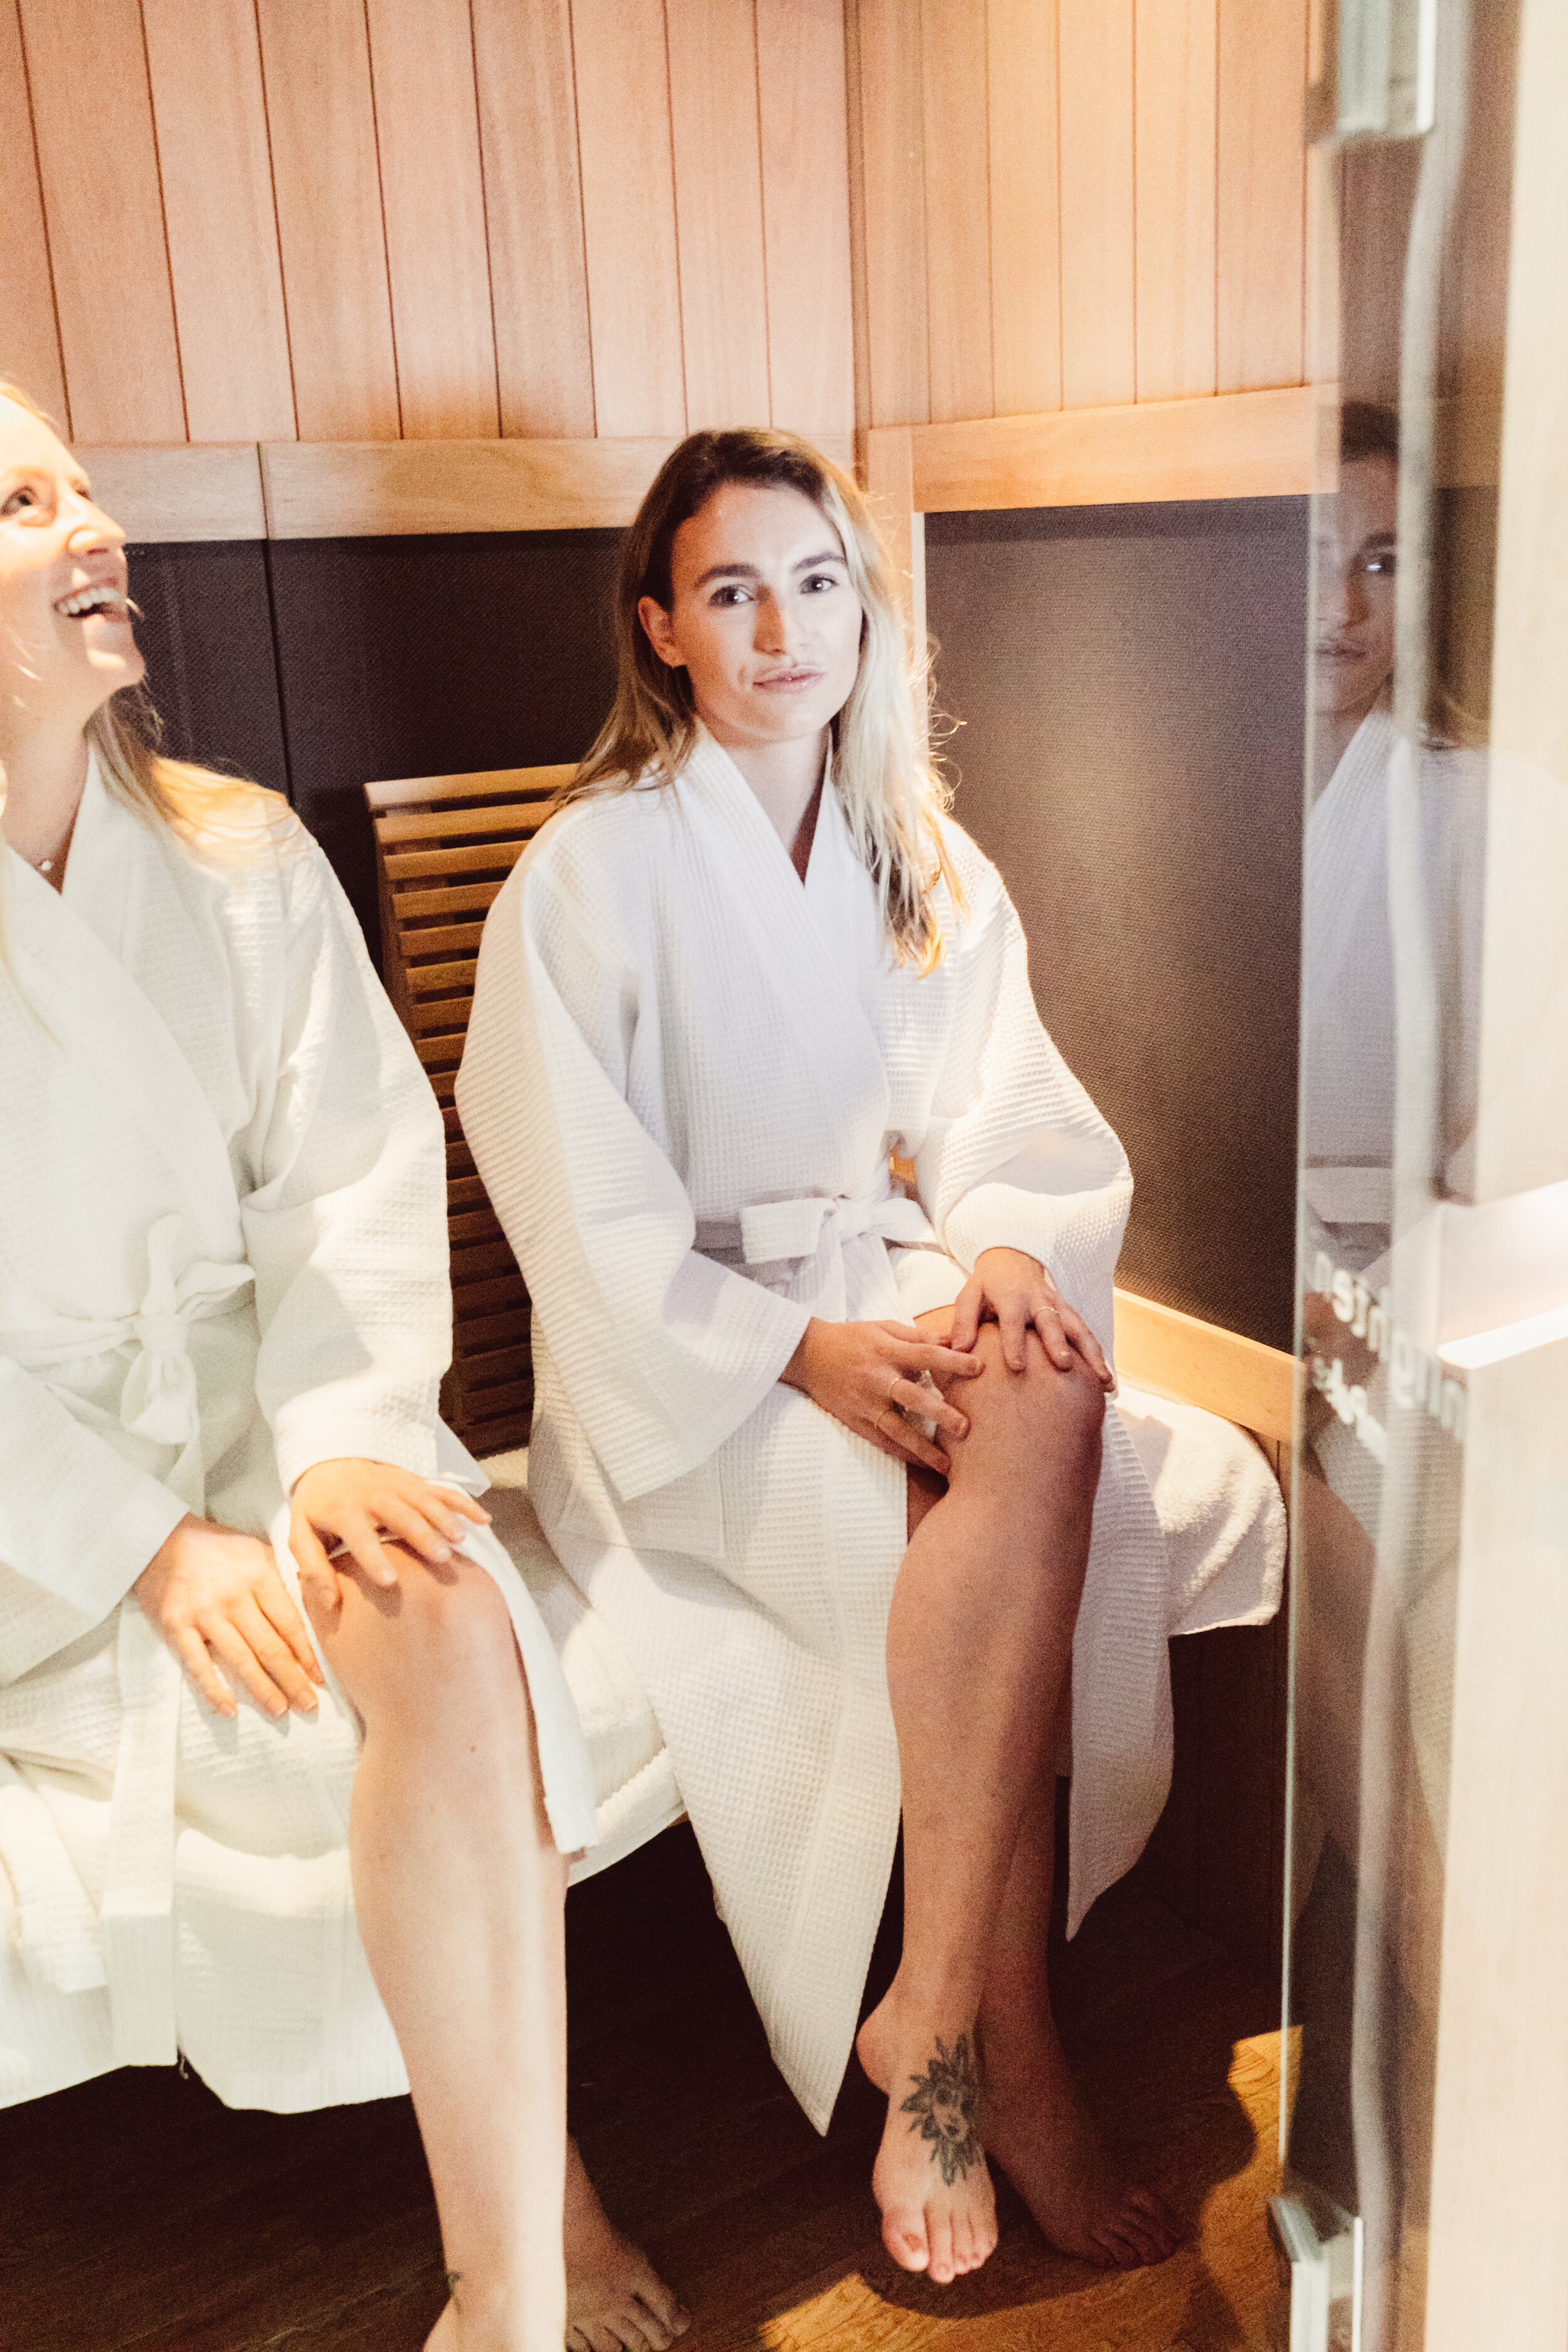 Our sunlighten infrared sauna. Add an infrared sauna session to your next float therapy session at float realm. Floating and sauna combine for two hours of prime self care!